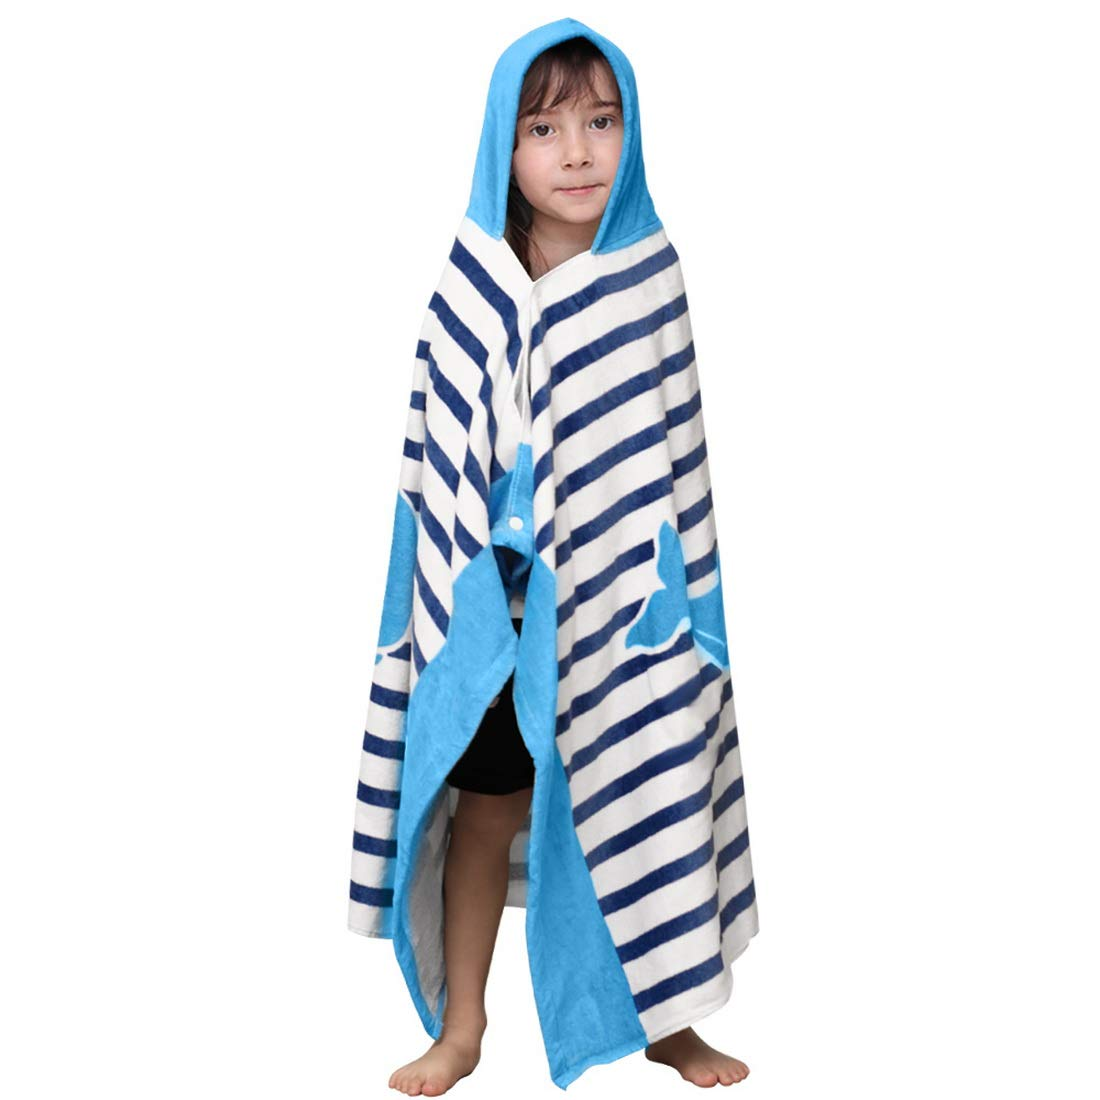 Hoomall Kids Bath Towel for Boys Girls, Whale Pattern Child Hooded Beach Towel Fast Drying Ultra Absorbent Poncho for Bath/Pool/Beach Swim Cover ups